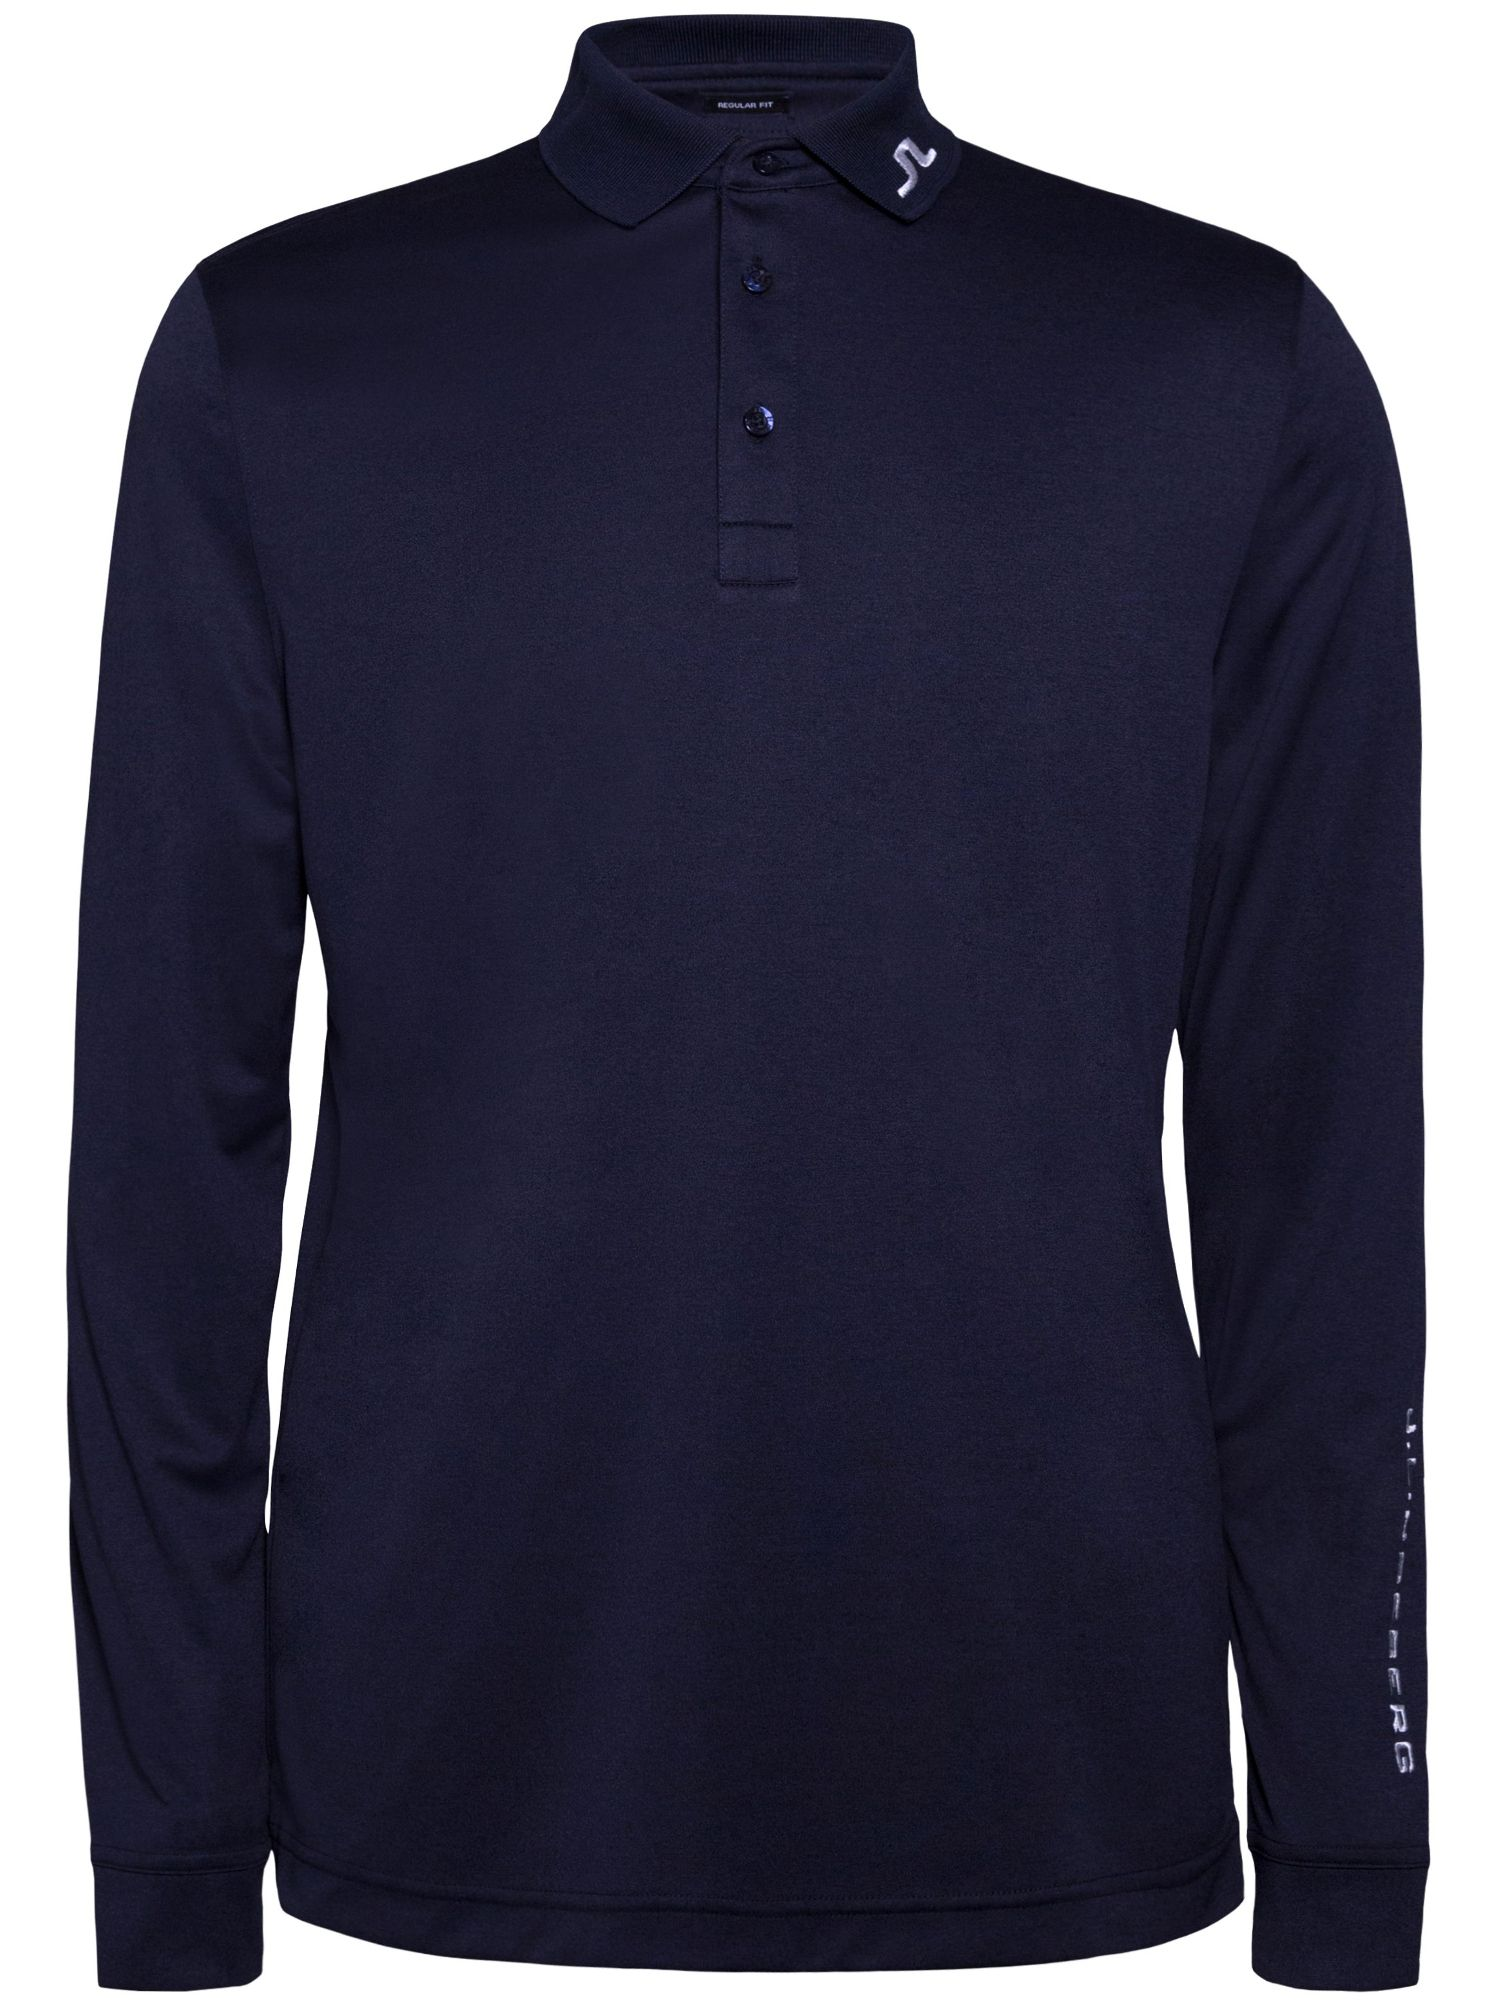 Men's J Lindeberg Tour Tech Long Sleeve Polo, Blue